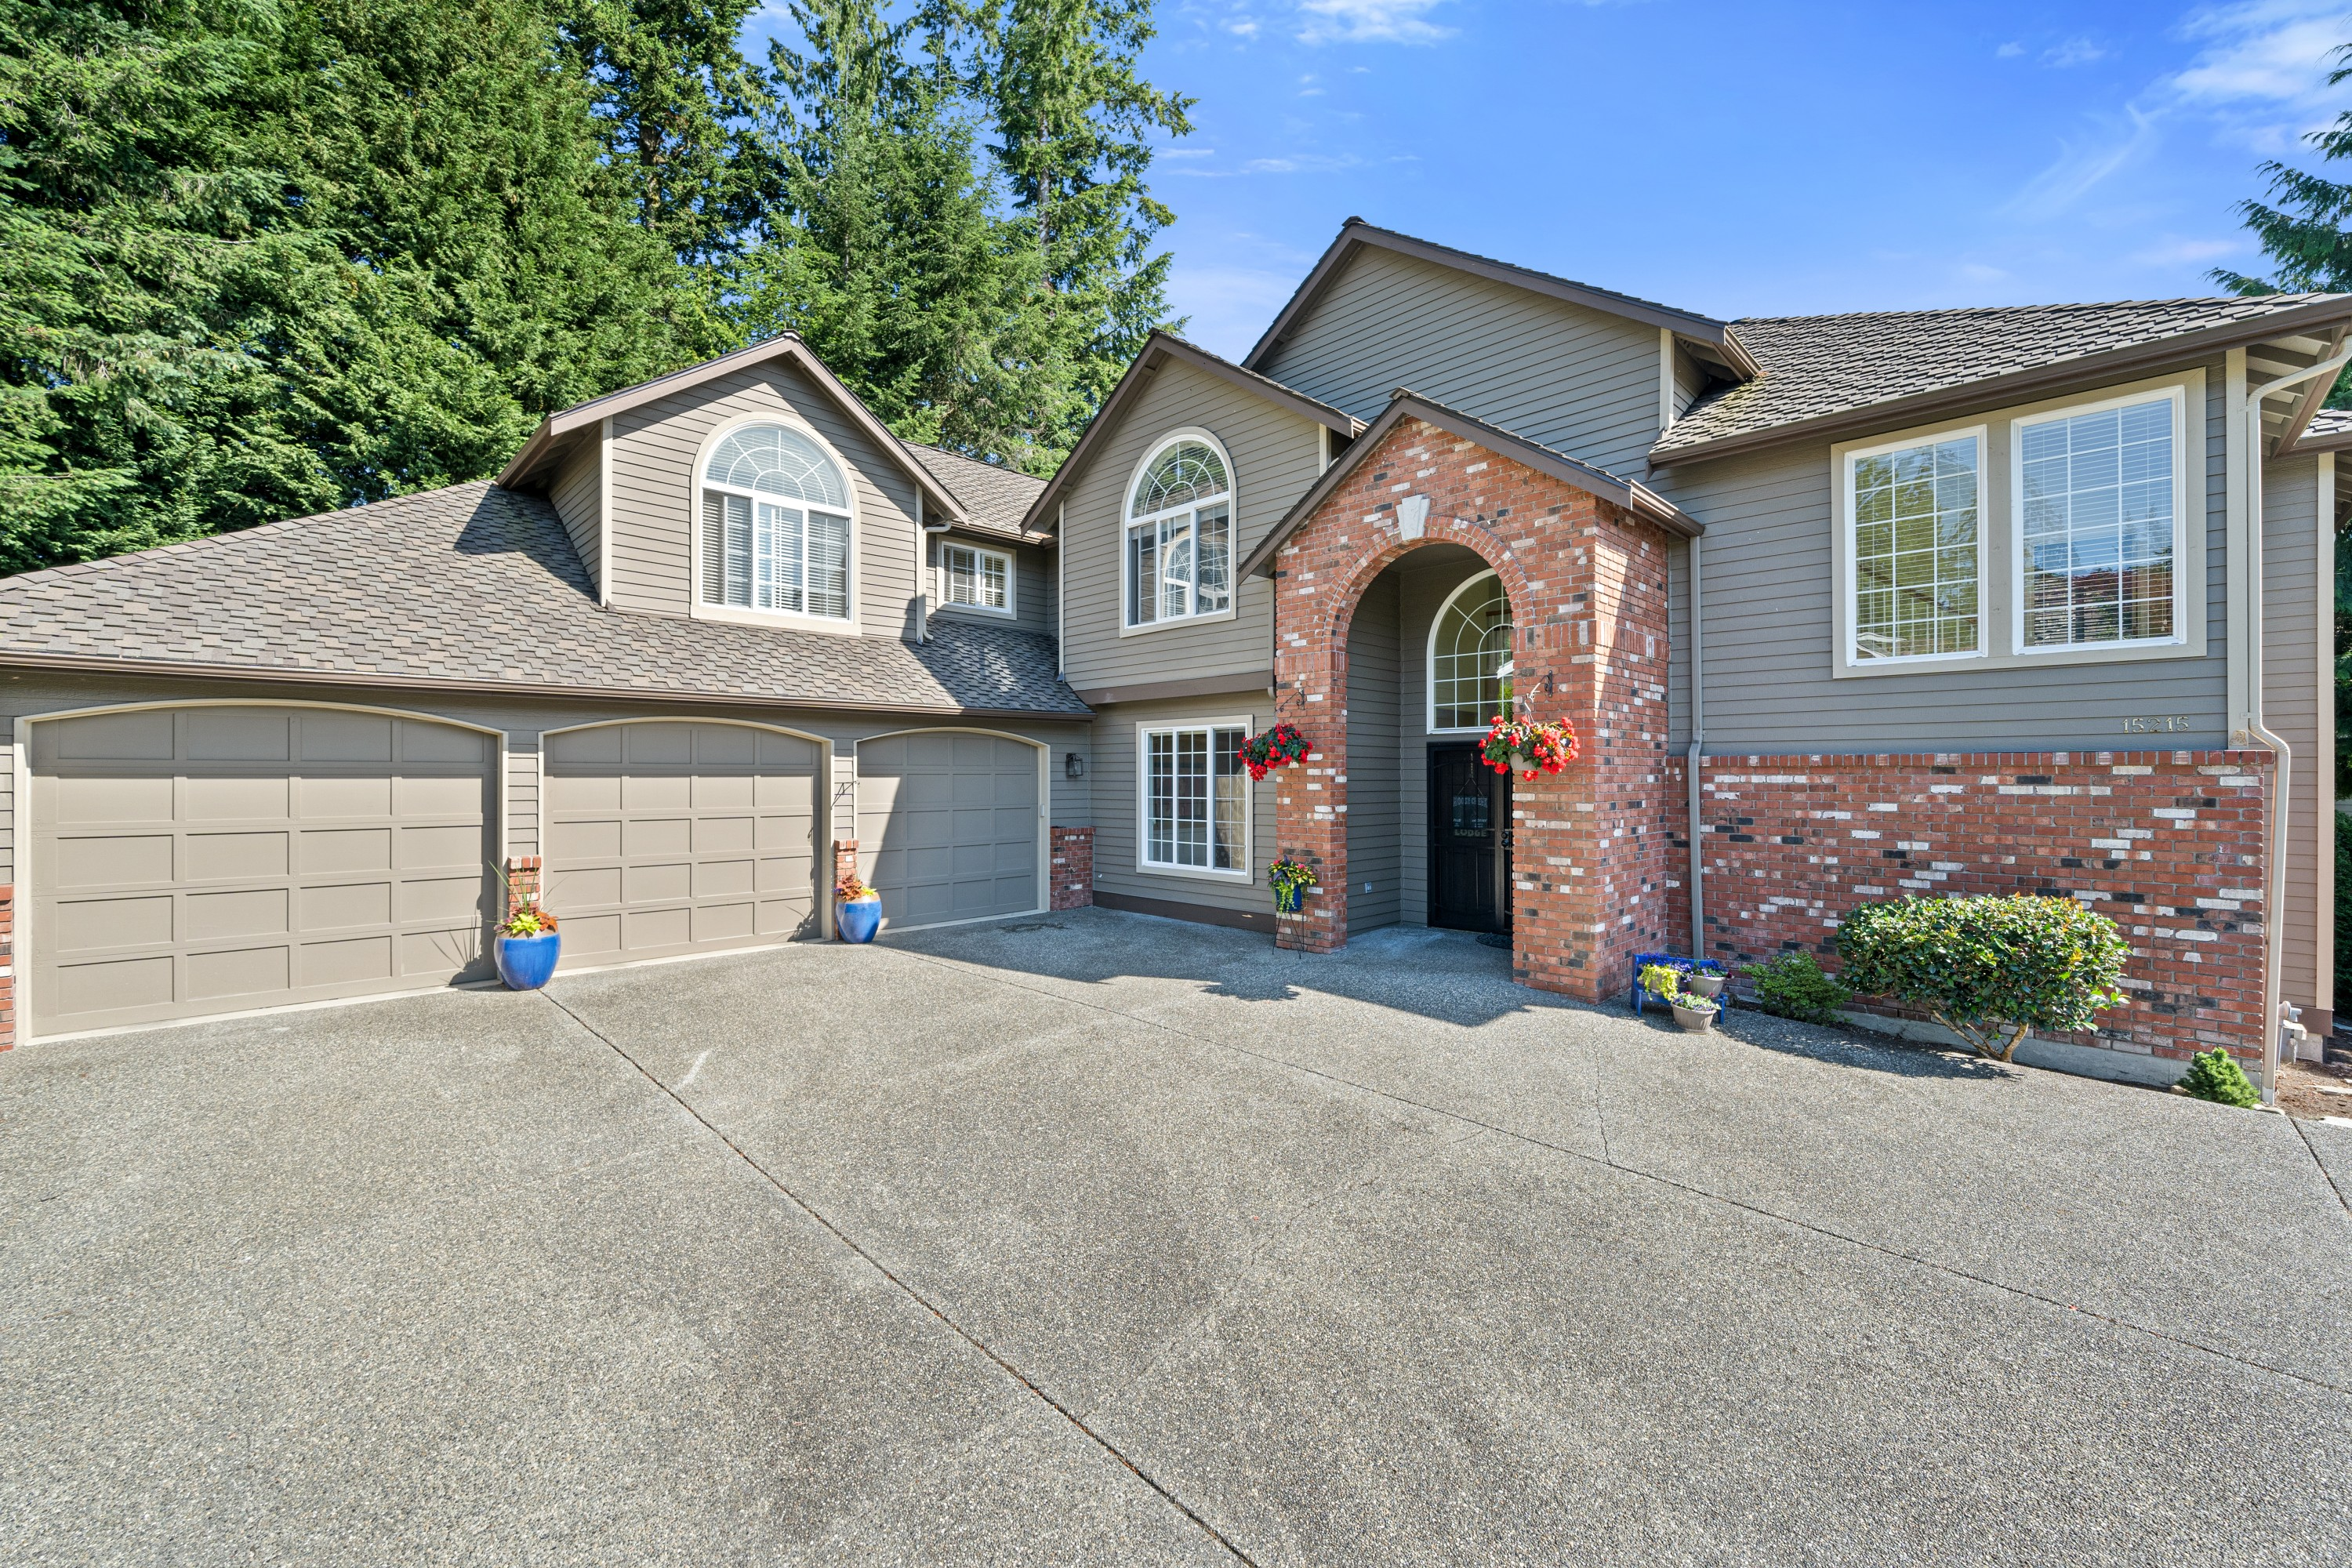 Welcome to this fabulous updated 4 bedroom plus den home in Juniper on a private, cul-de-sac, lot